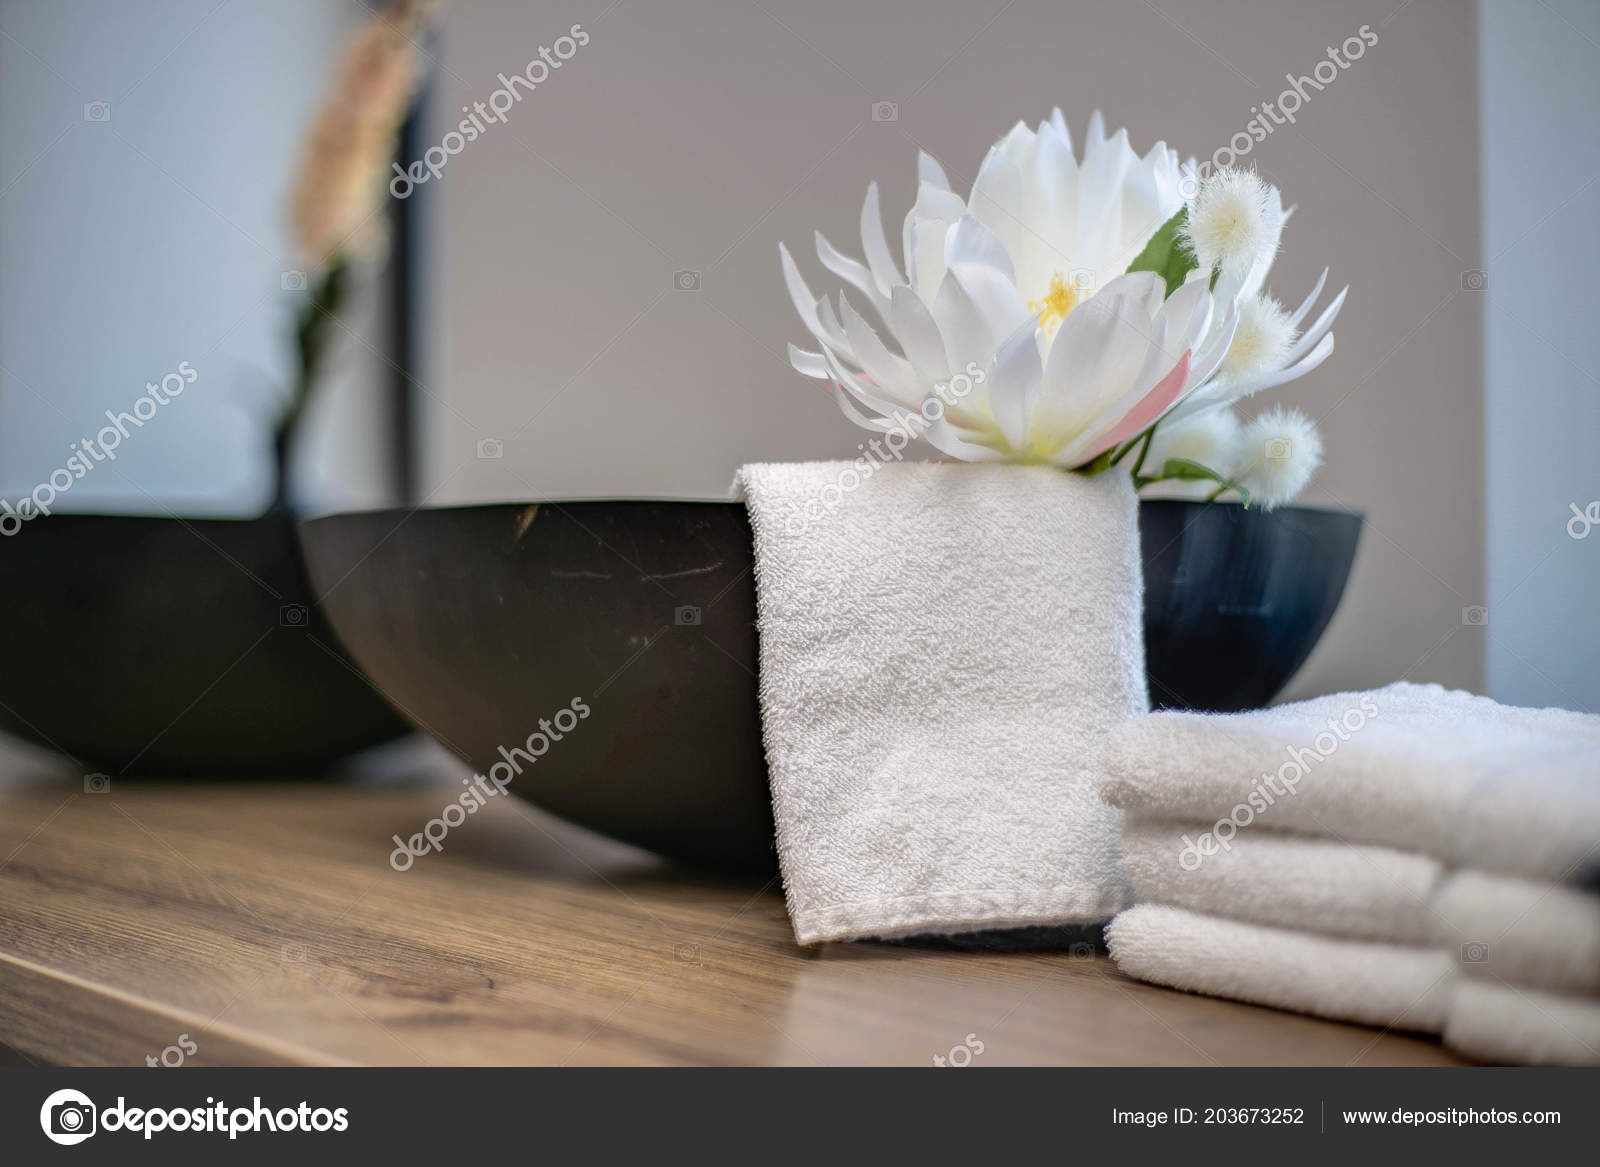 Pictures Small Beauty Salon Design Ideas Beauty Salon Table Close Up With Flower Decoration In A Spa Room And White Towels Stock Photo C Annebel146 203673252